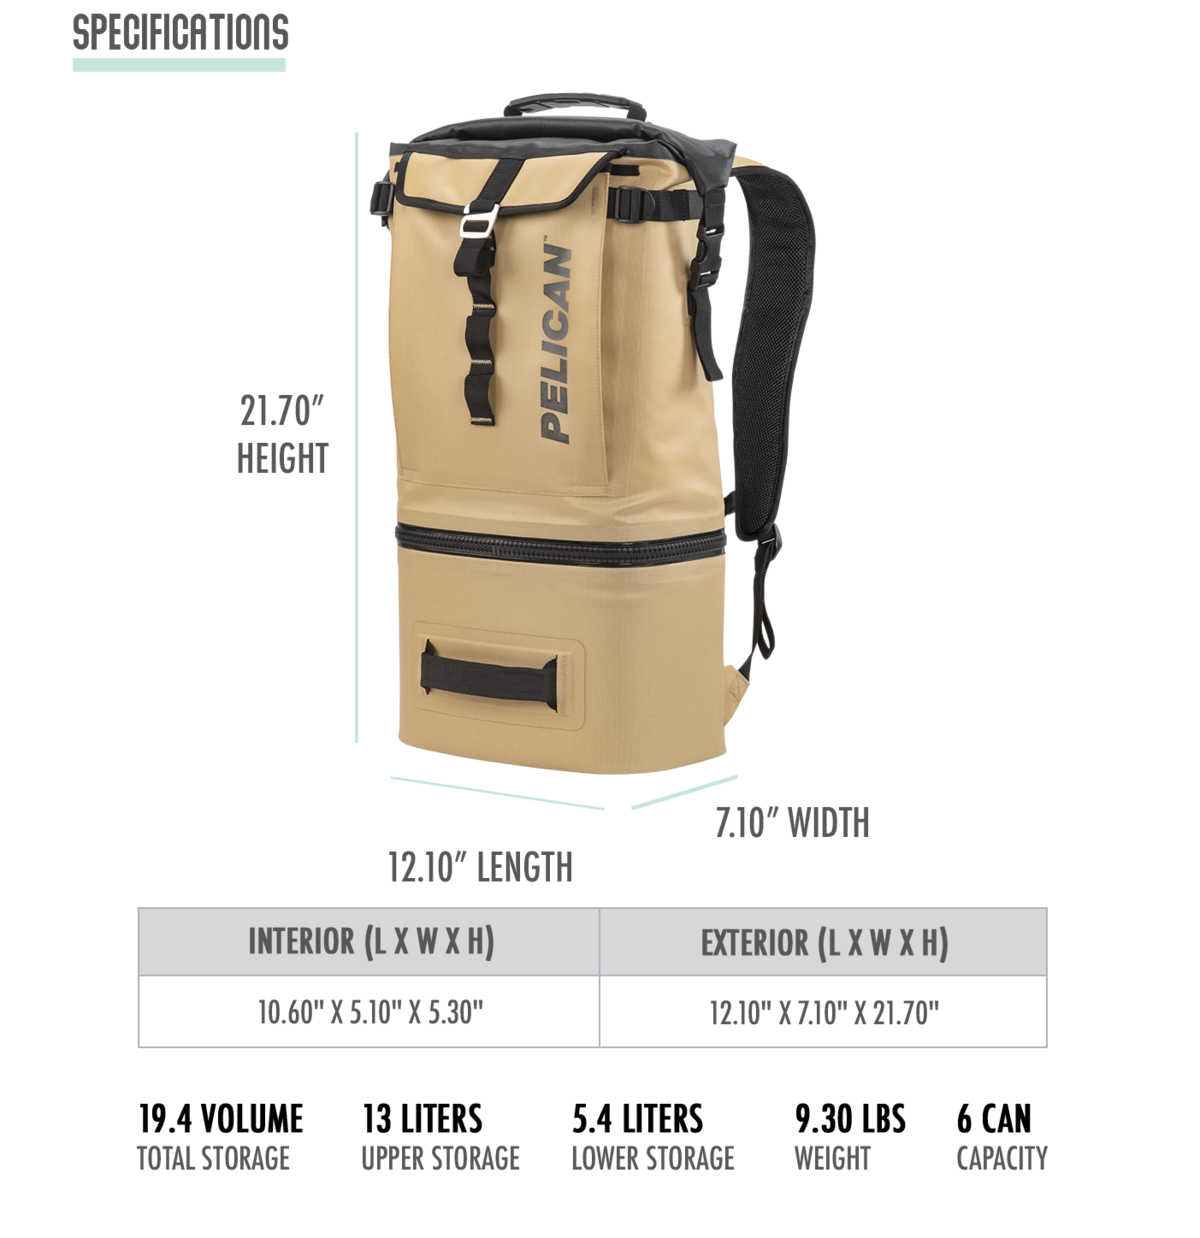 "19.4 total volume. Upper section holds 13 litters. Lower section holds 5.4 liters or 6 cans with ice. Overall weight is 9.30 lbs. The Pelican Dayventure Cooker Backpack is 12.10"" x 7.10"" x 21.70"""